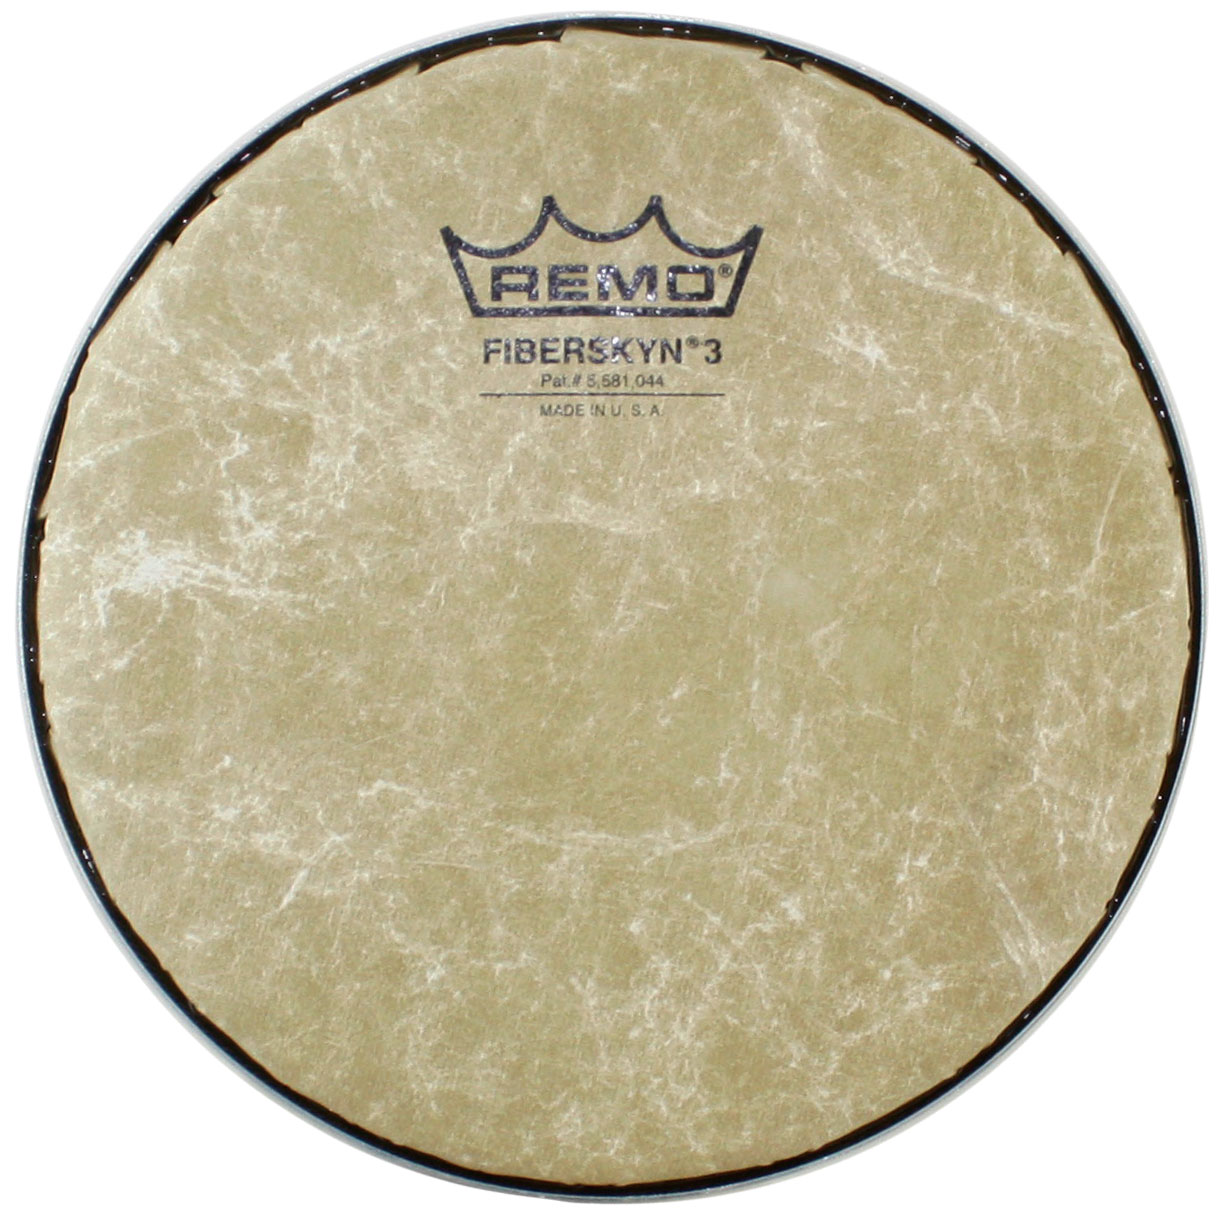 "Remo 6.75"" S-Series Fiberskyn Macho Bongo Drum Head"